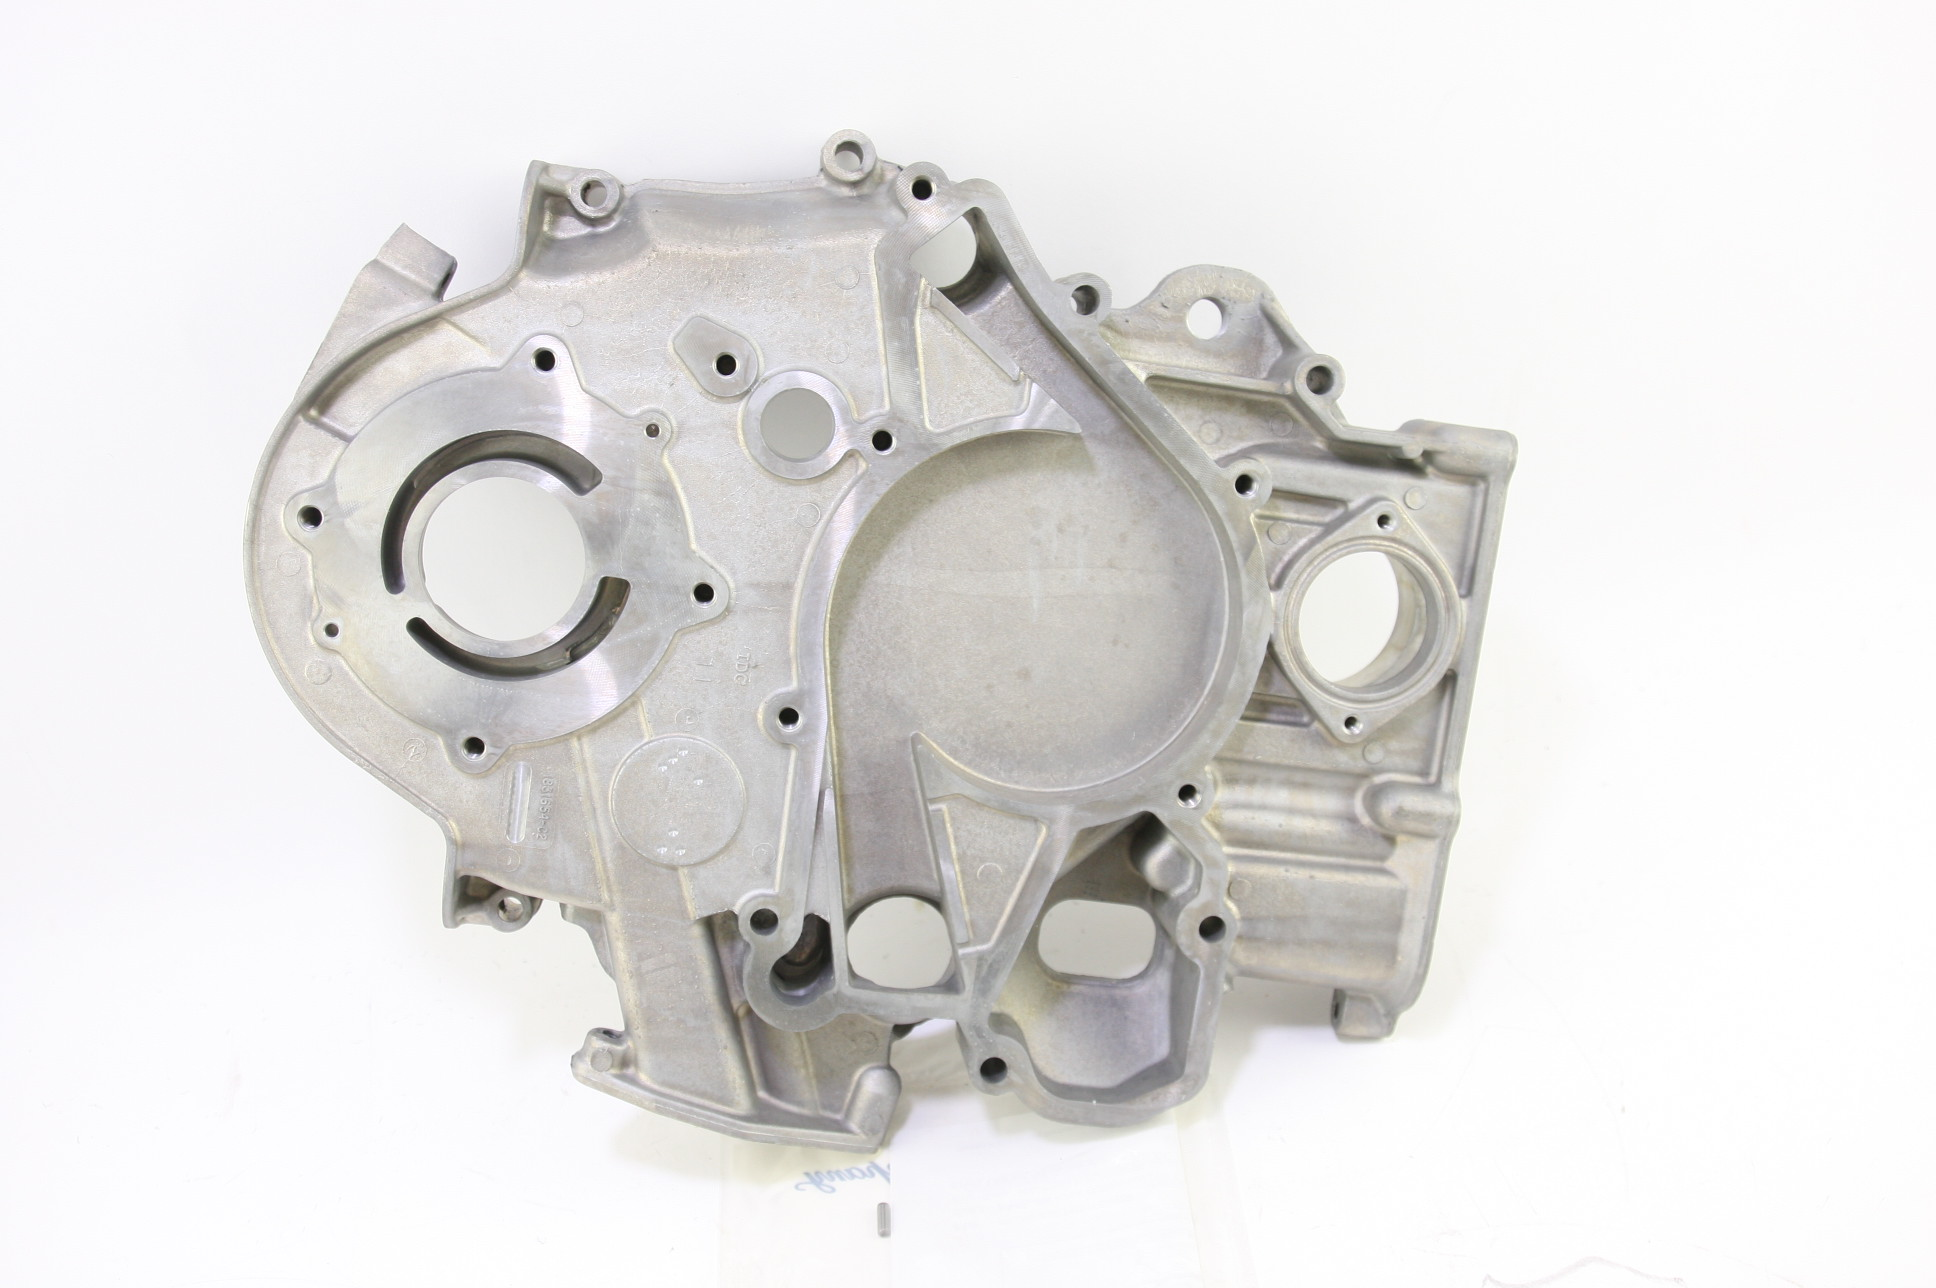 New OEM YC3Z6019BA Ford 99-03 F-350 Super Duty Engine Timing Cover Free Shipping - image 7